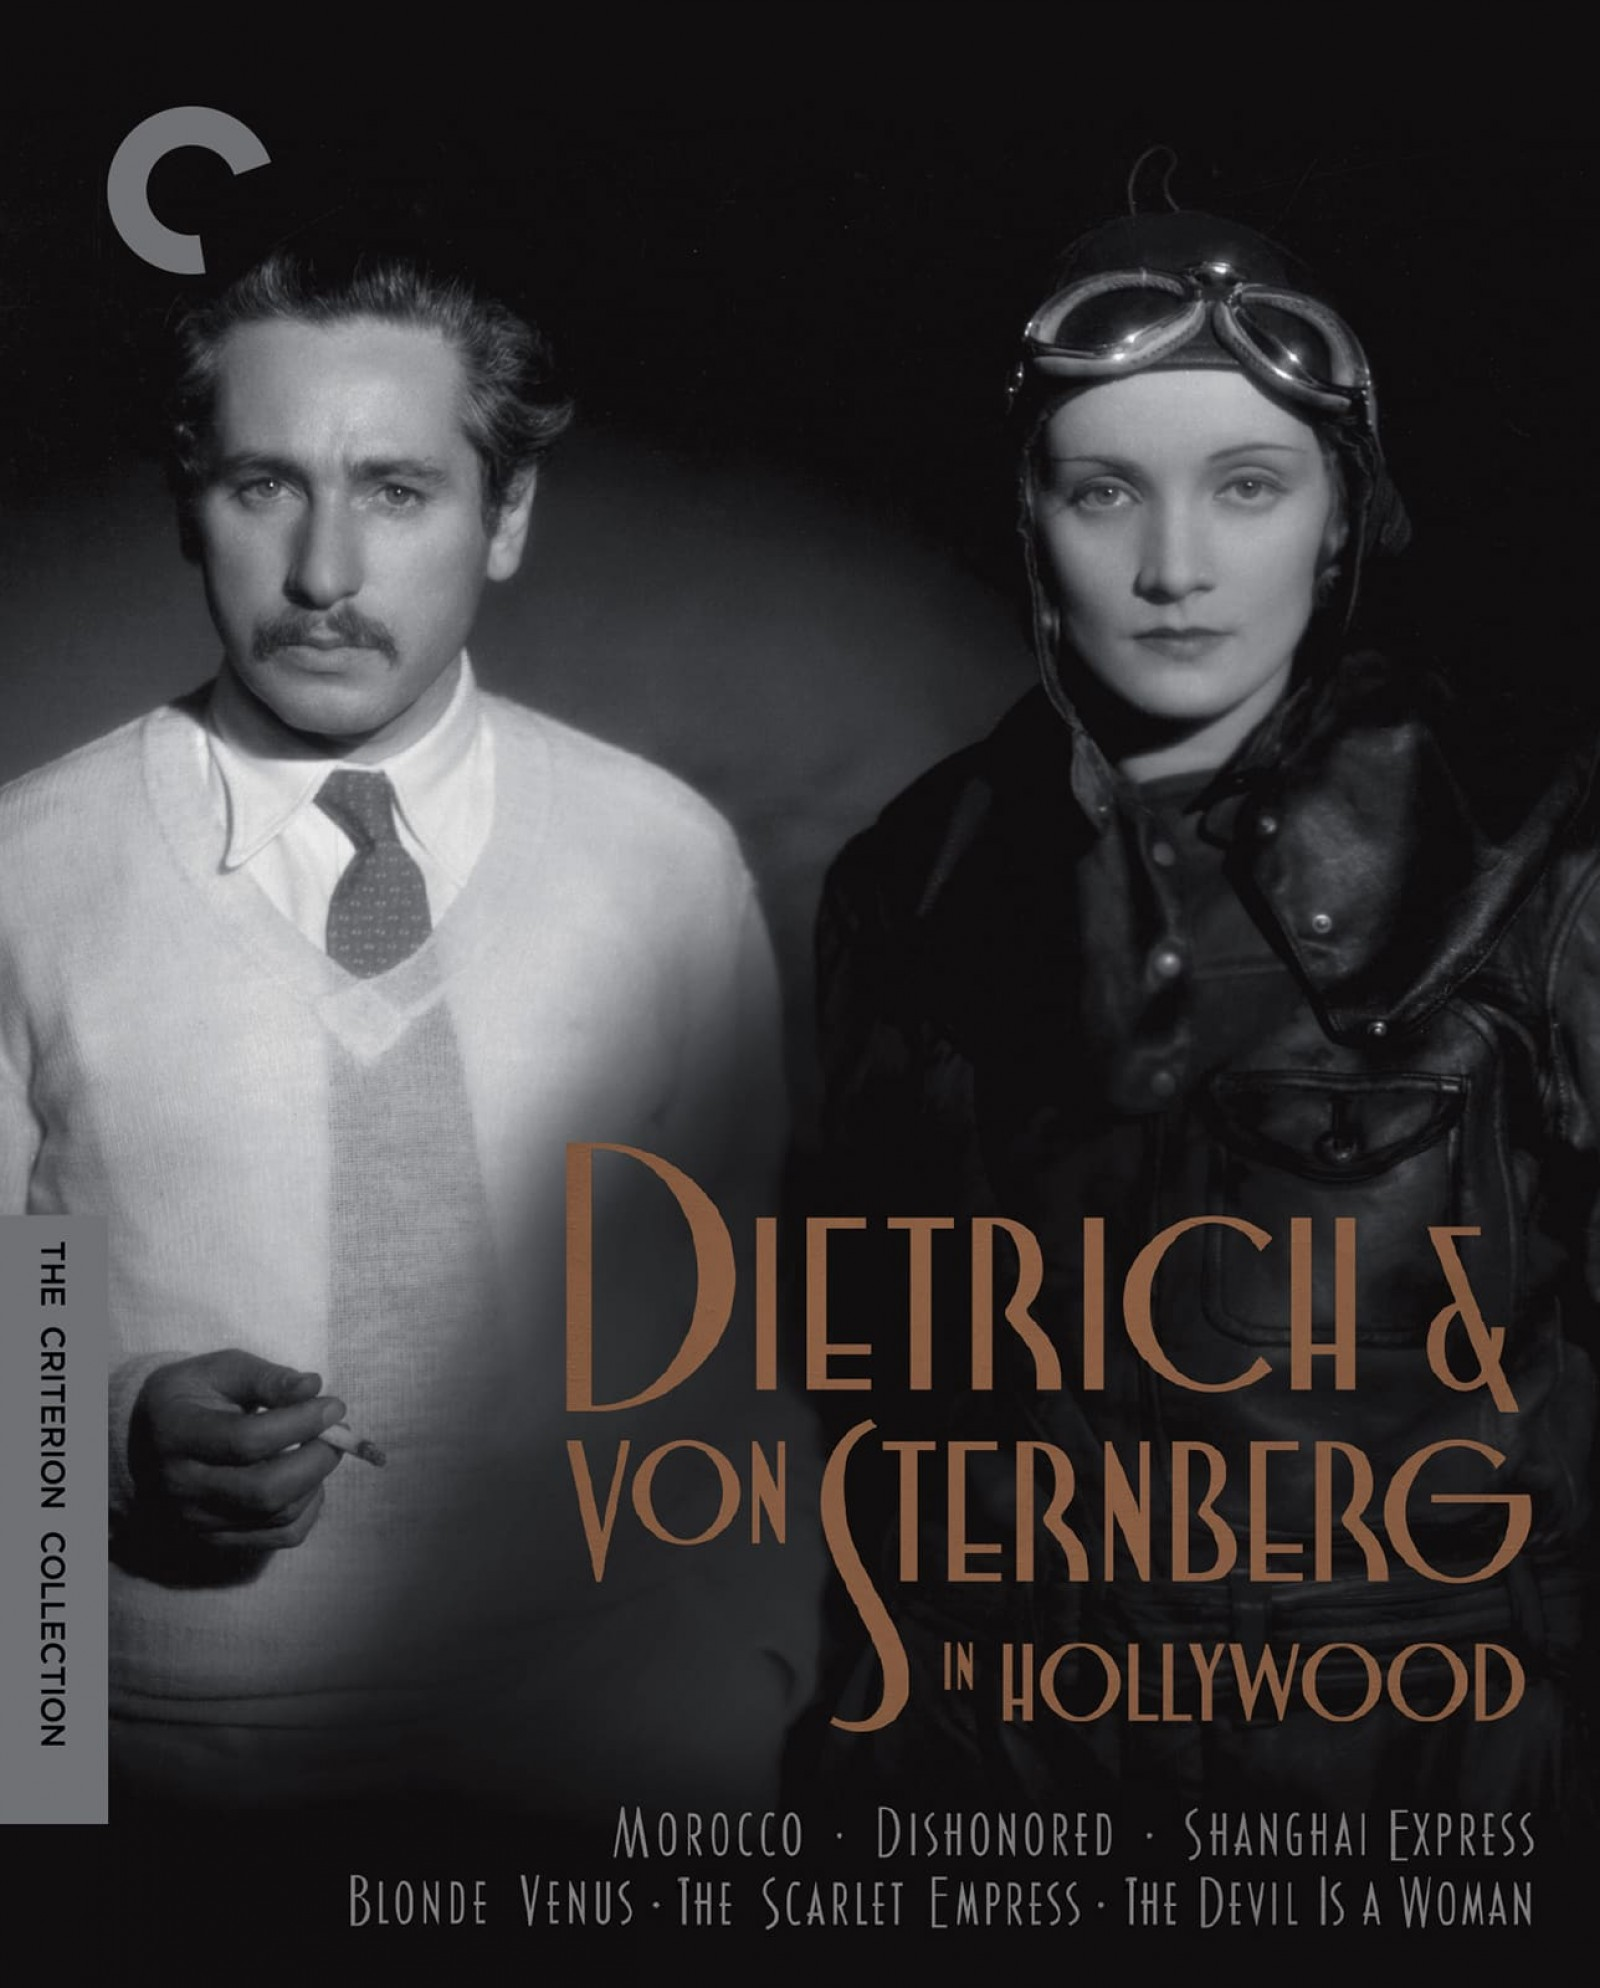 Dietrich & von Sternberg in Hollywood